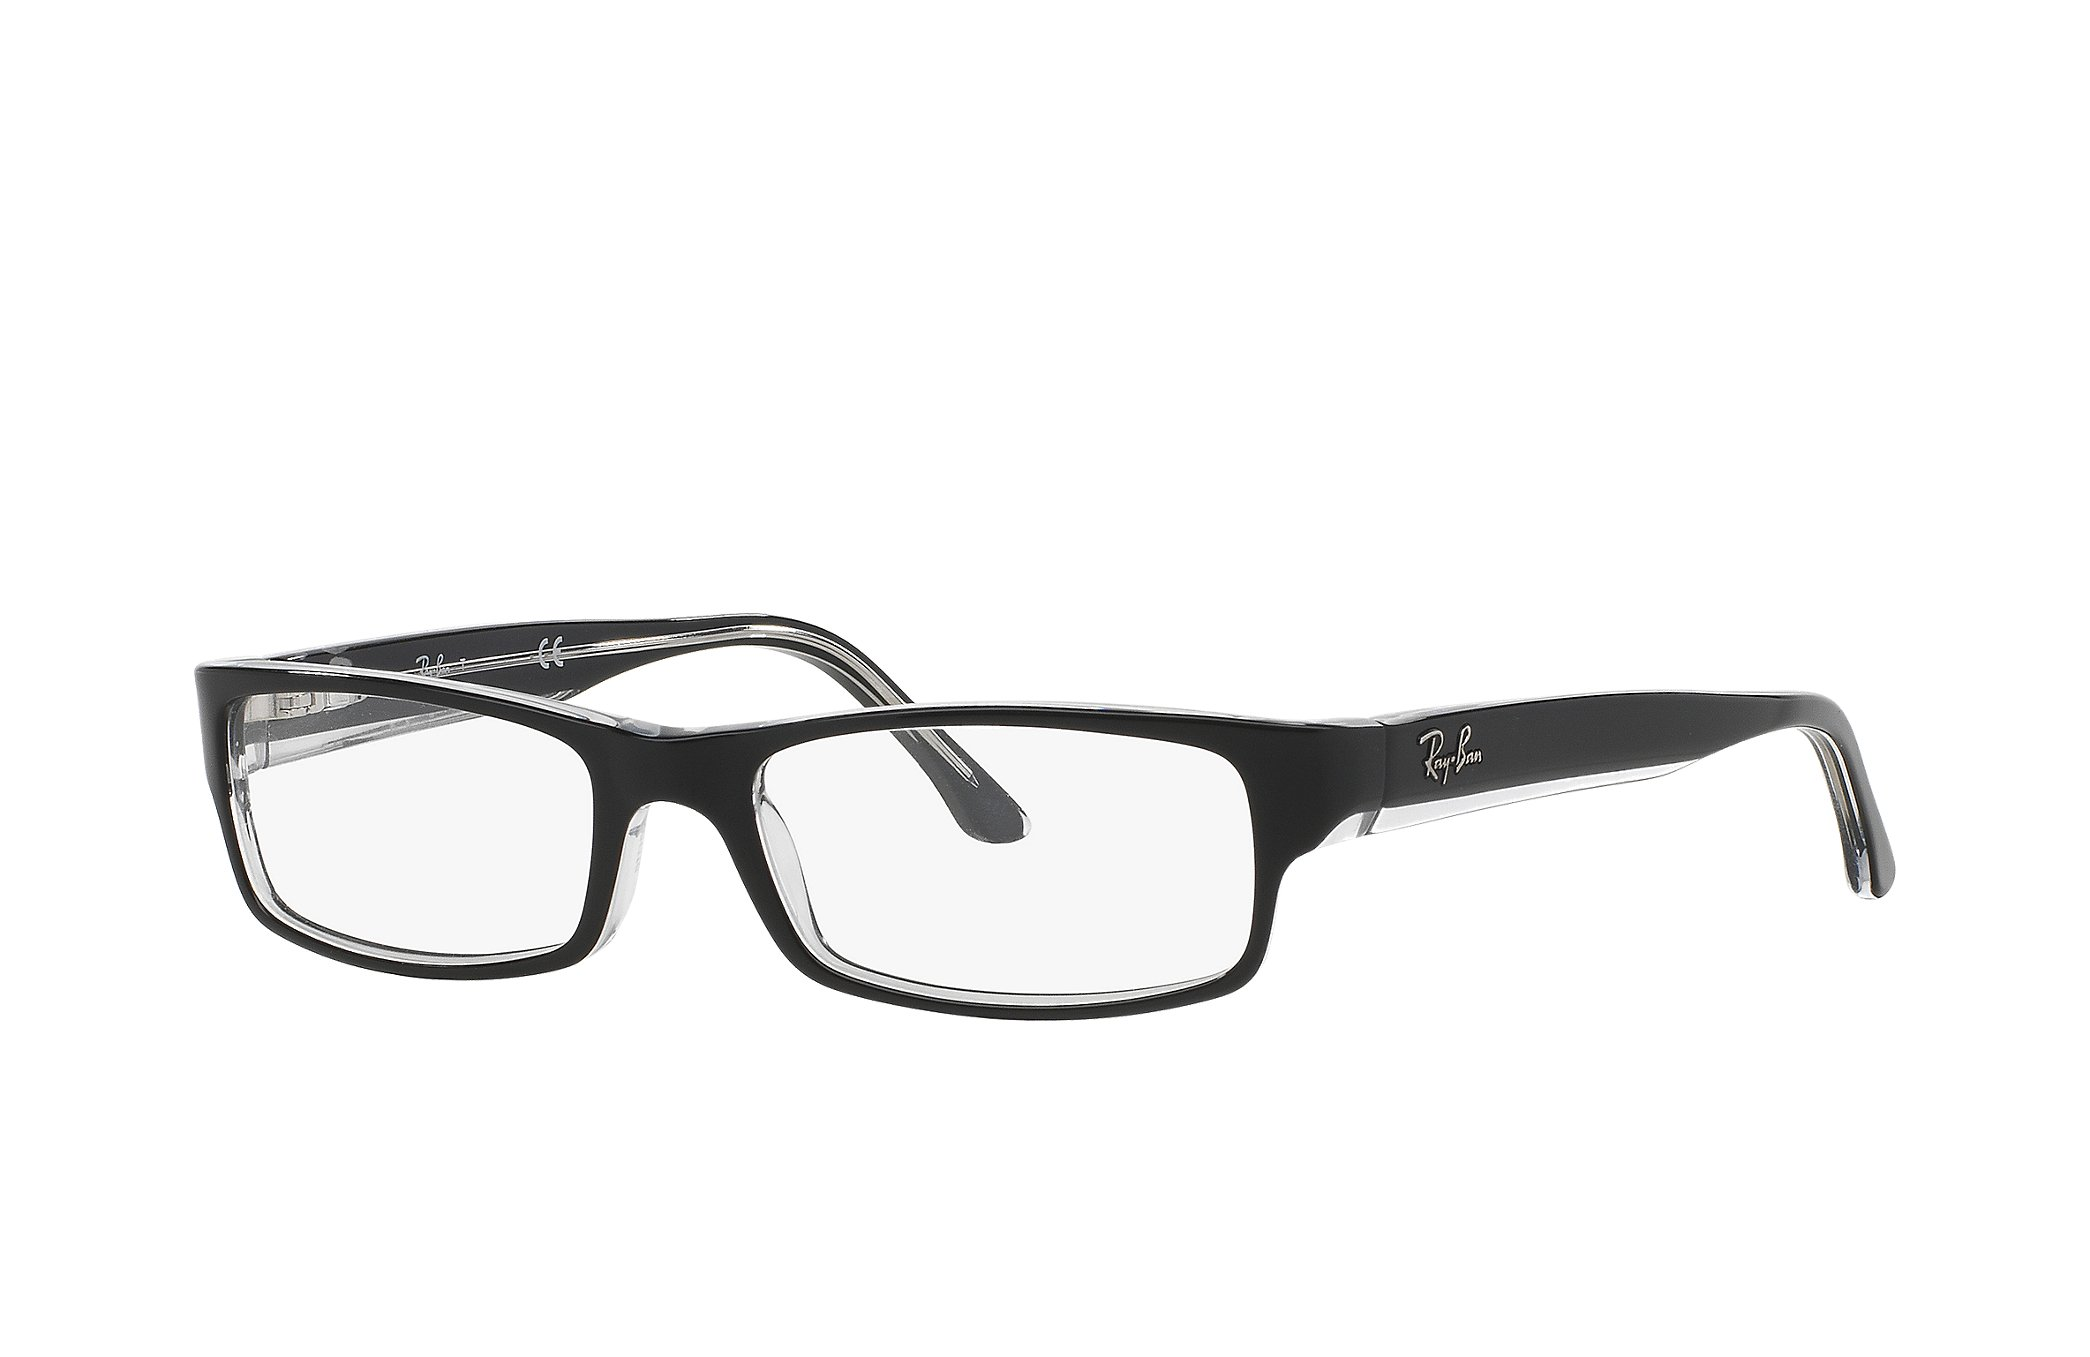 RAY BAN 5114 SIZE 52 READING GLASSES +2.50